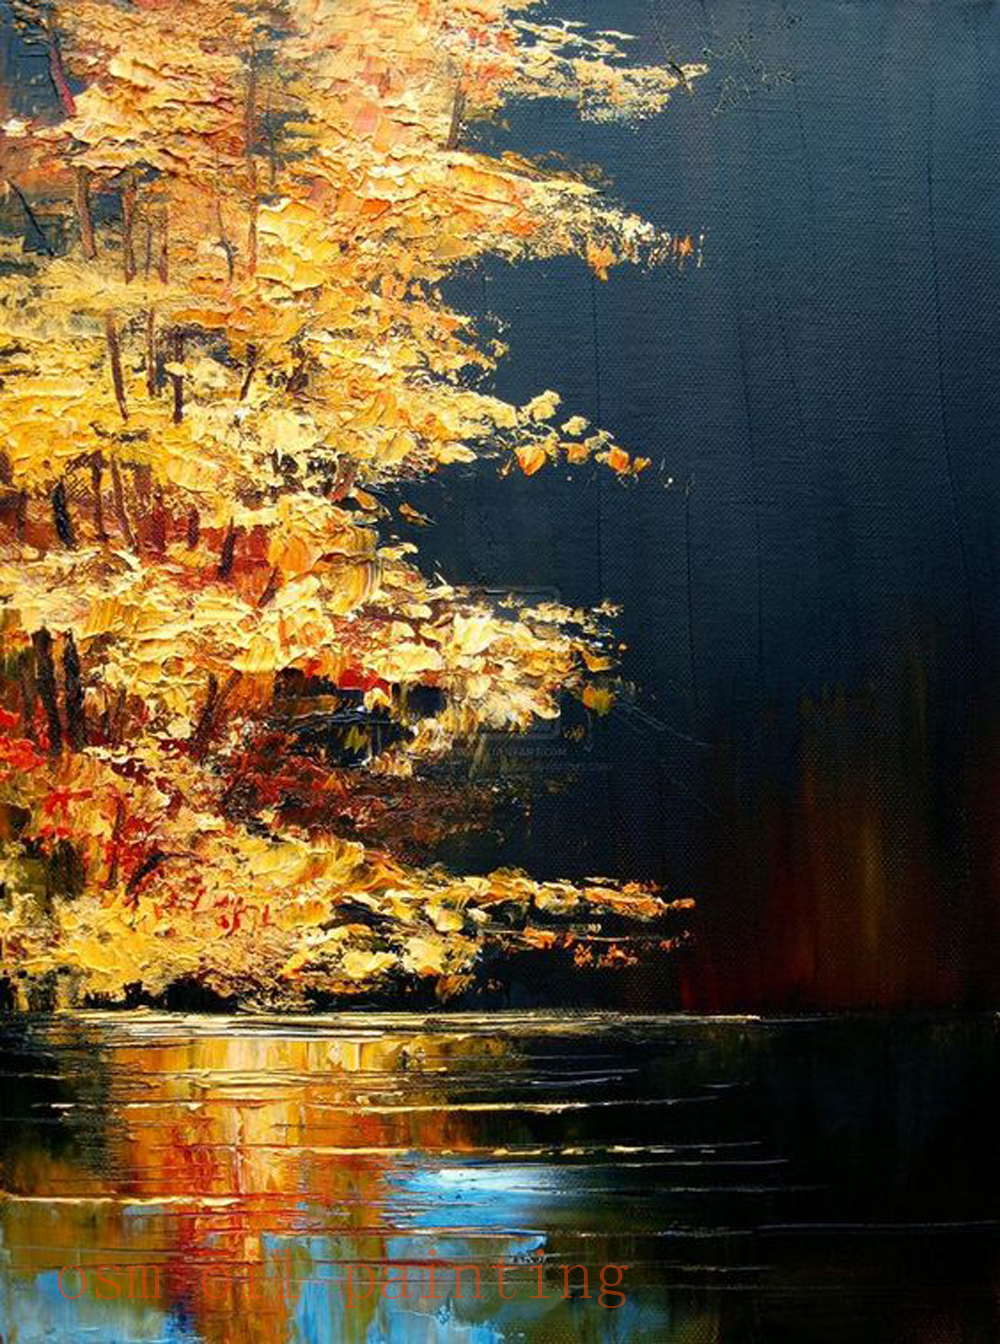 Handmade Amazing Art Knife Oil Paintings Canvas Gold Yellow Tones